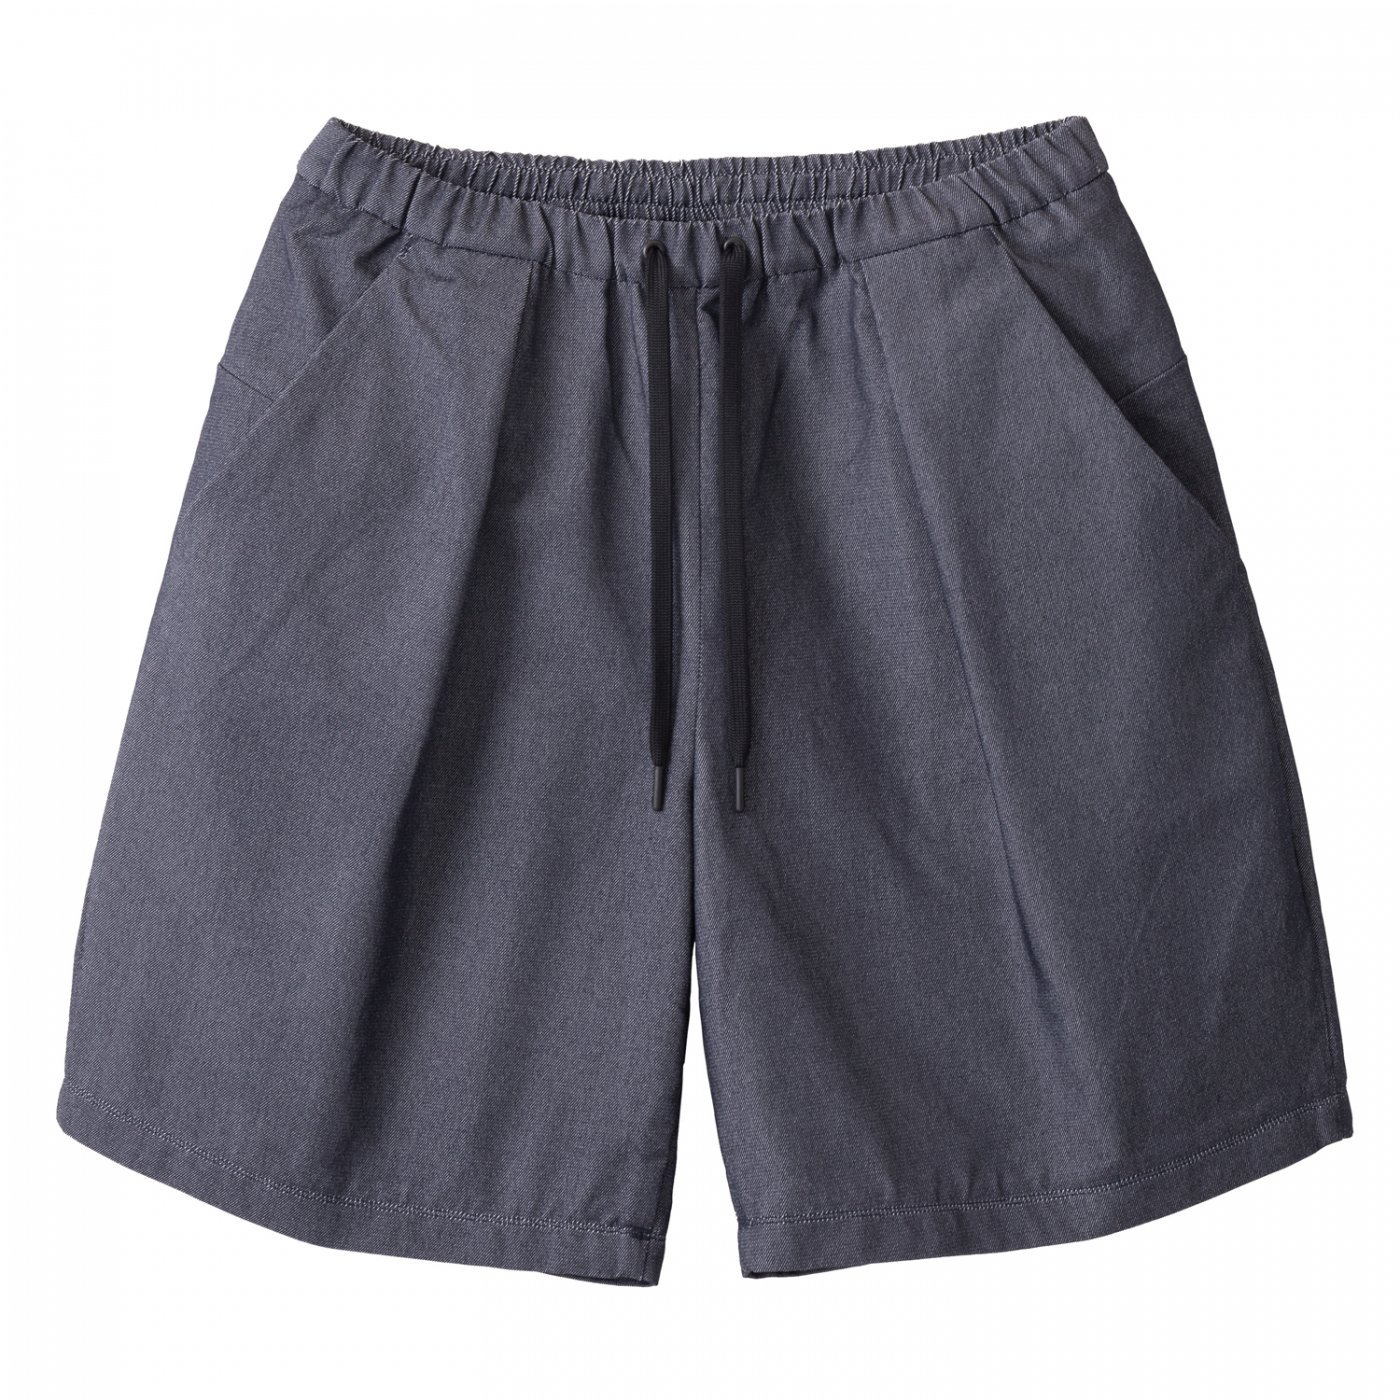 <img class='new_mark_img1' src='https://img.shop-pro.jp/img/new/icons8.gif' style='border:none;display:inline;margin:0px;padding:0px;width:auto;' />TEATORA テアトラ- WALLET SHORTS RESORT / TIME LEAP -NAVY-